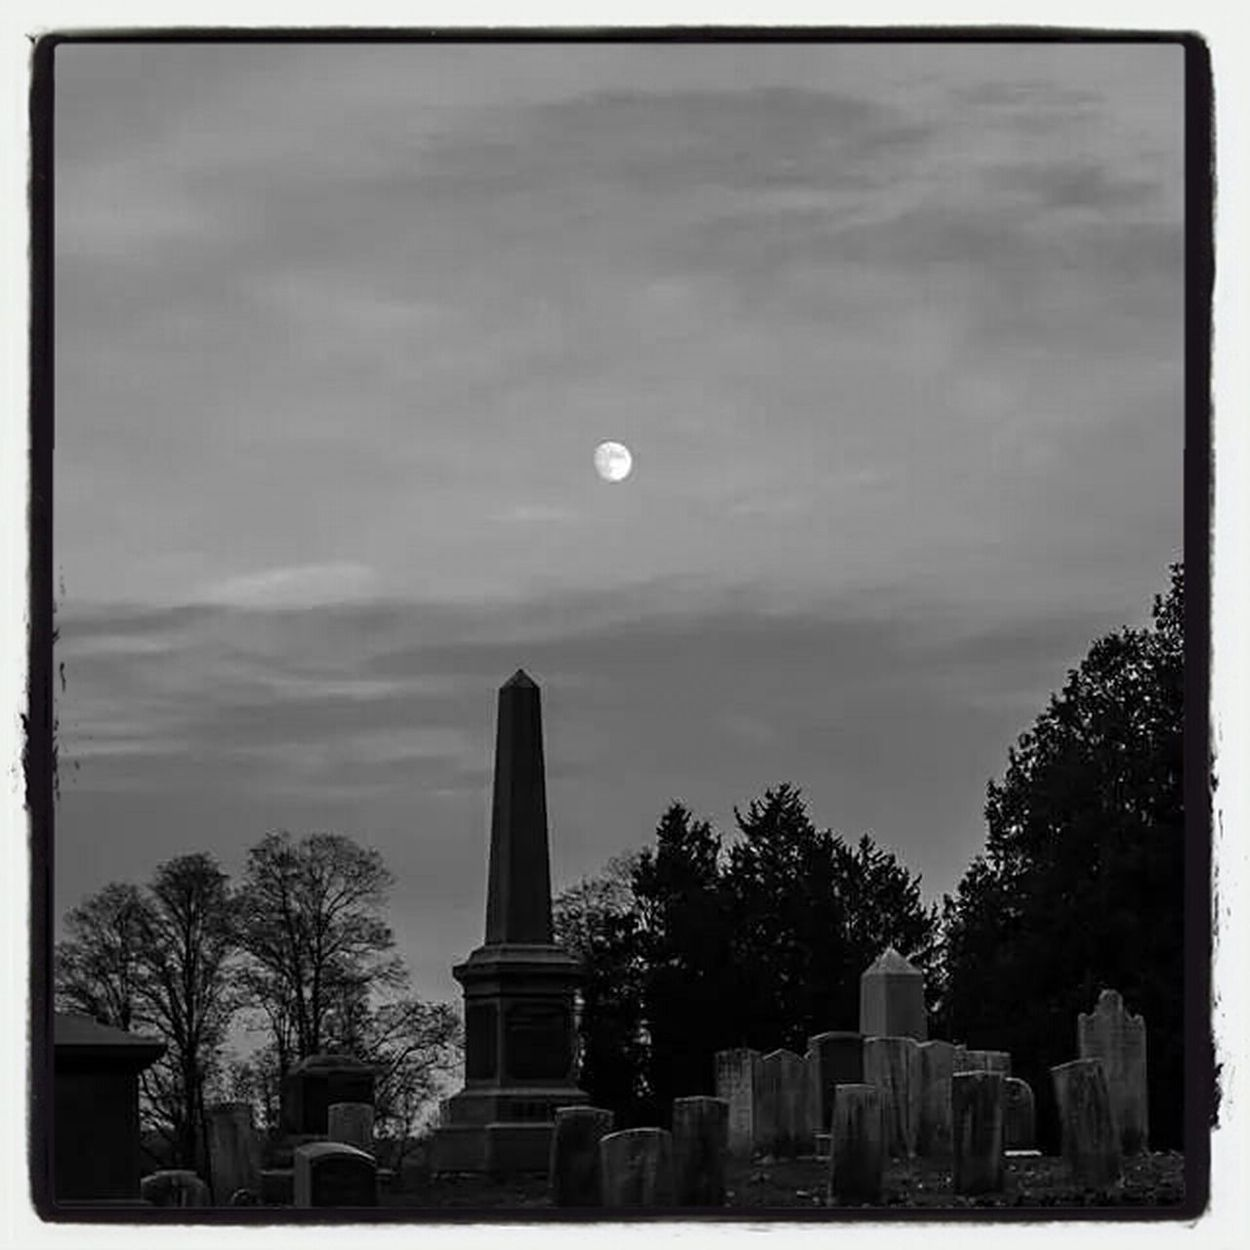 Dusk Moon First Eyeem Photo Cemeteryscape blessed monuments Tcwphotography.com